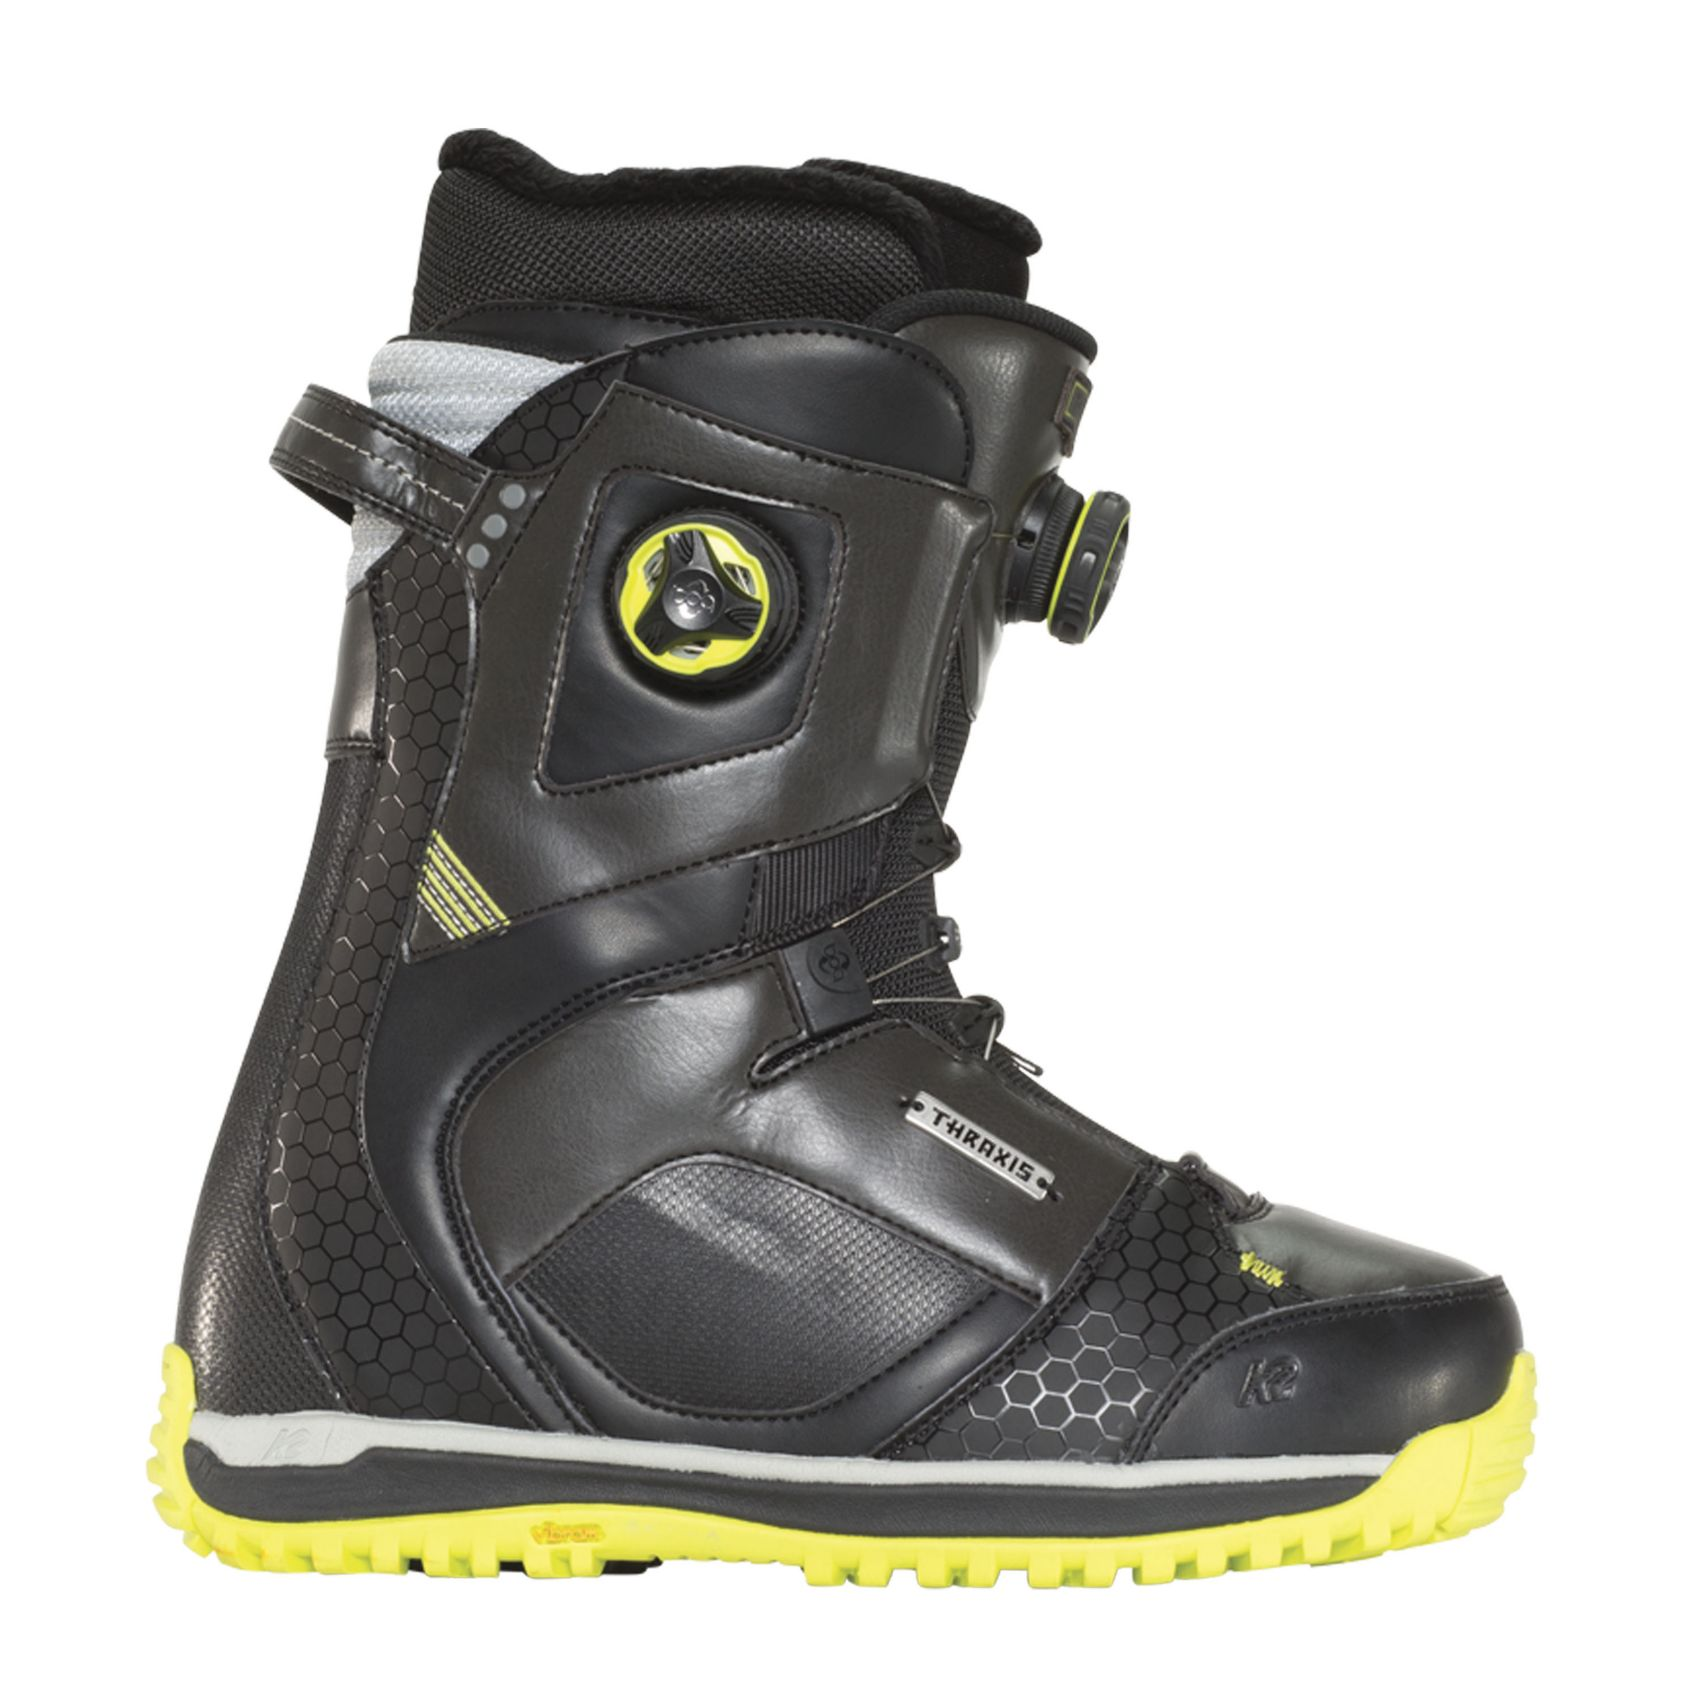 k2 snowboard boots thraxis triple boa stiff freeride responsive 2017 ebay. Black Bedroom Furniture Sets. Home Design Ideas